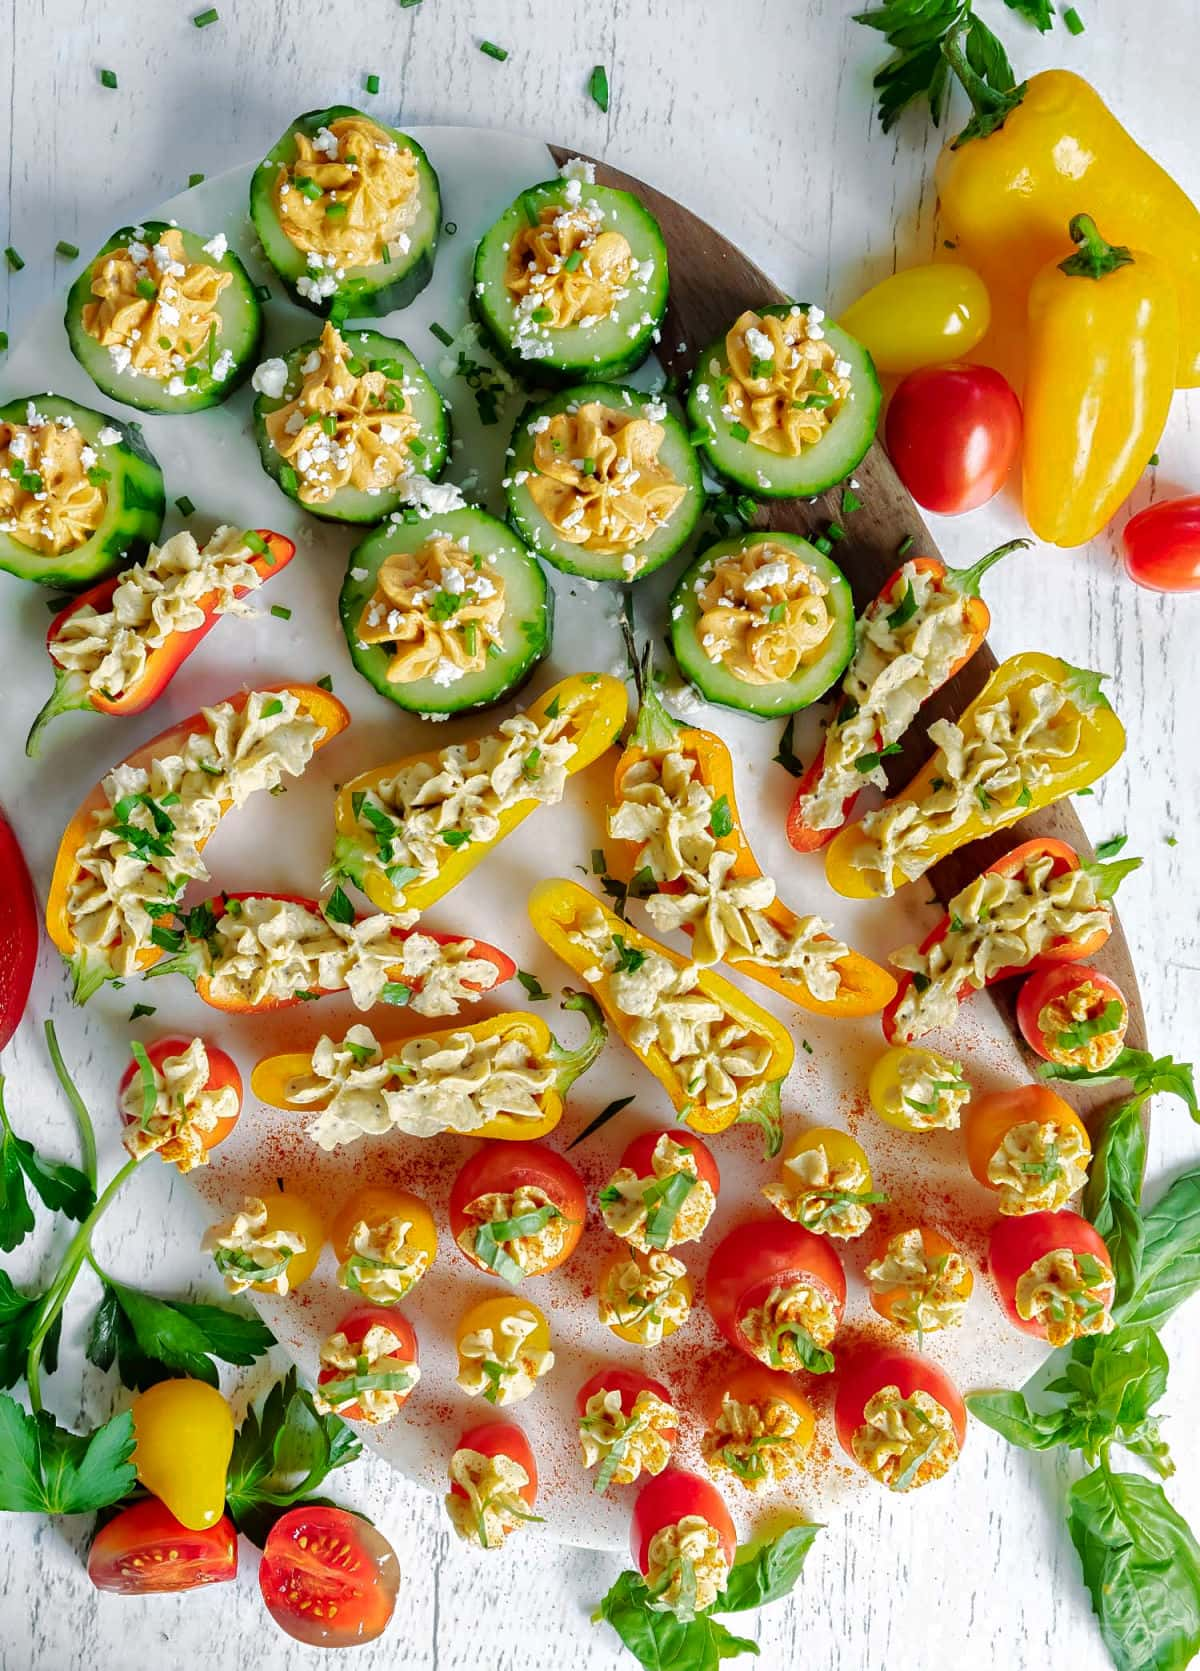 top down look at veggies stuffed with hummus and topped with herbs